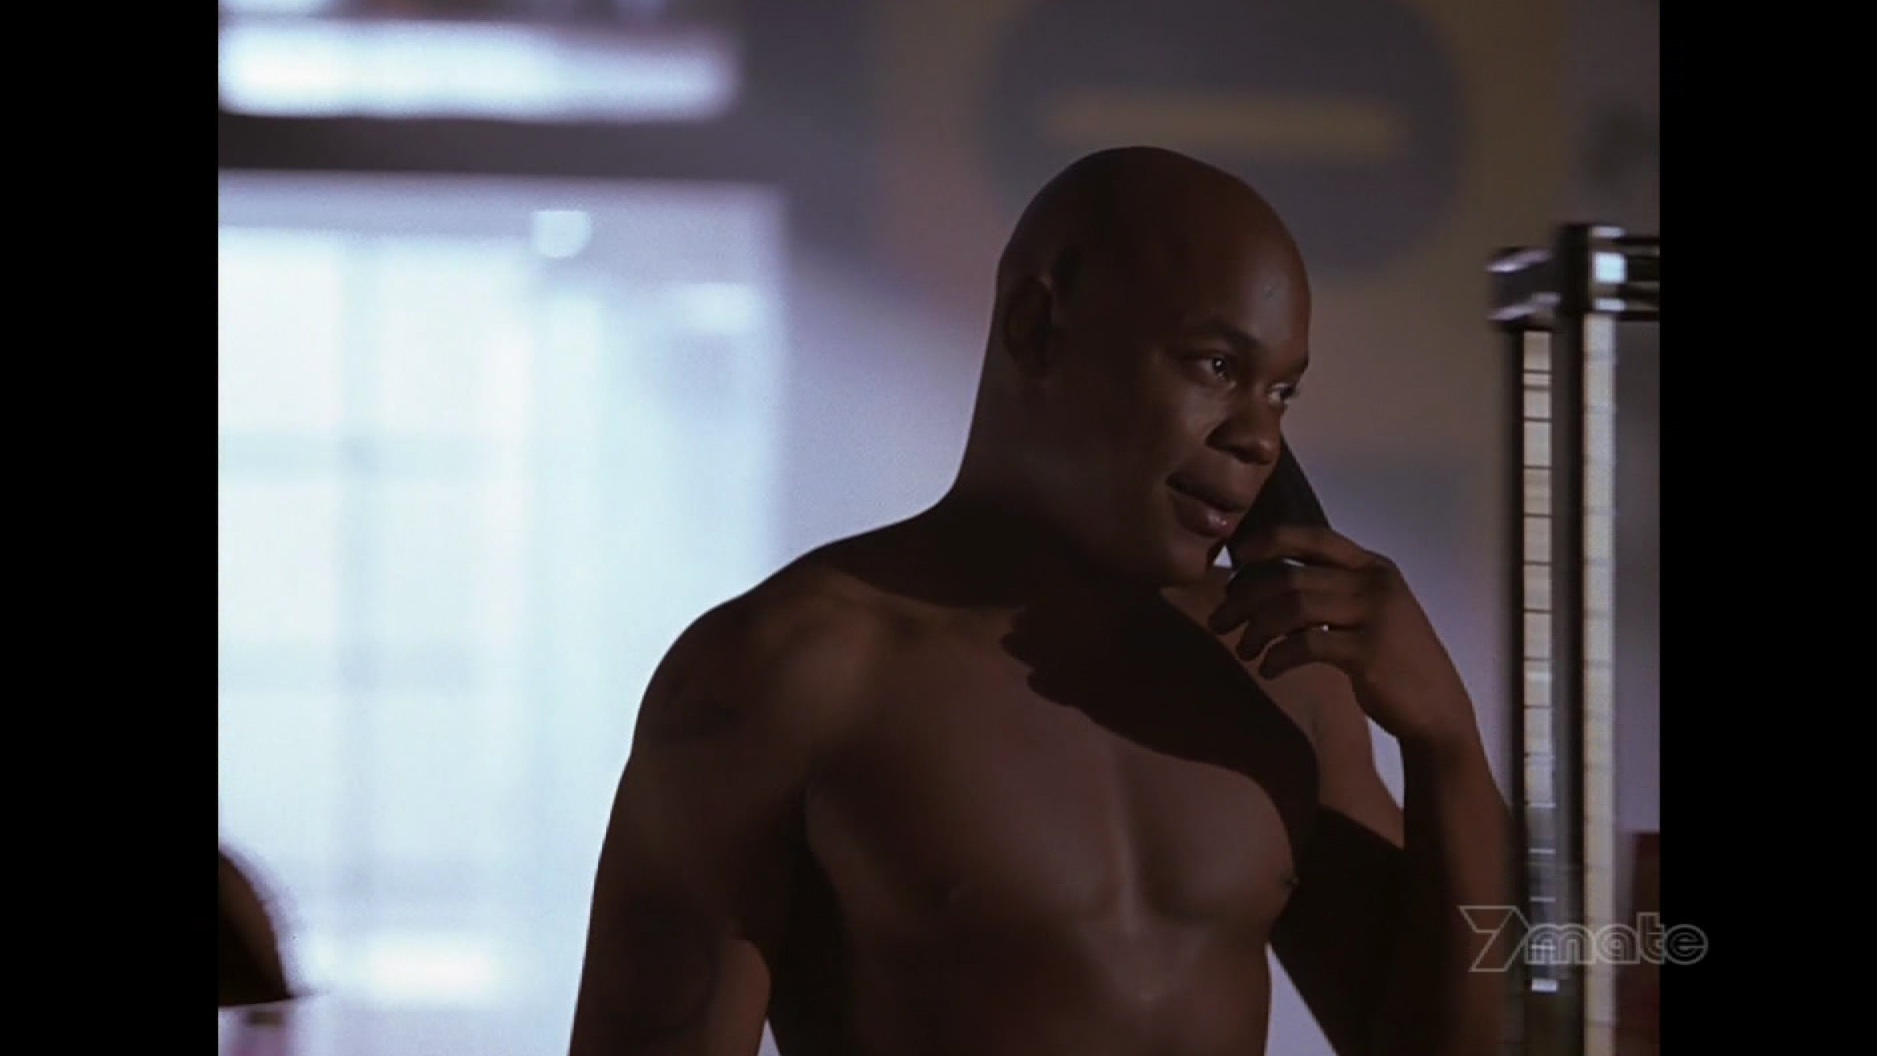 Black male actor nude scene